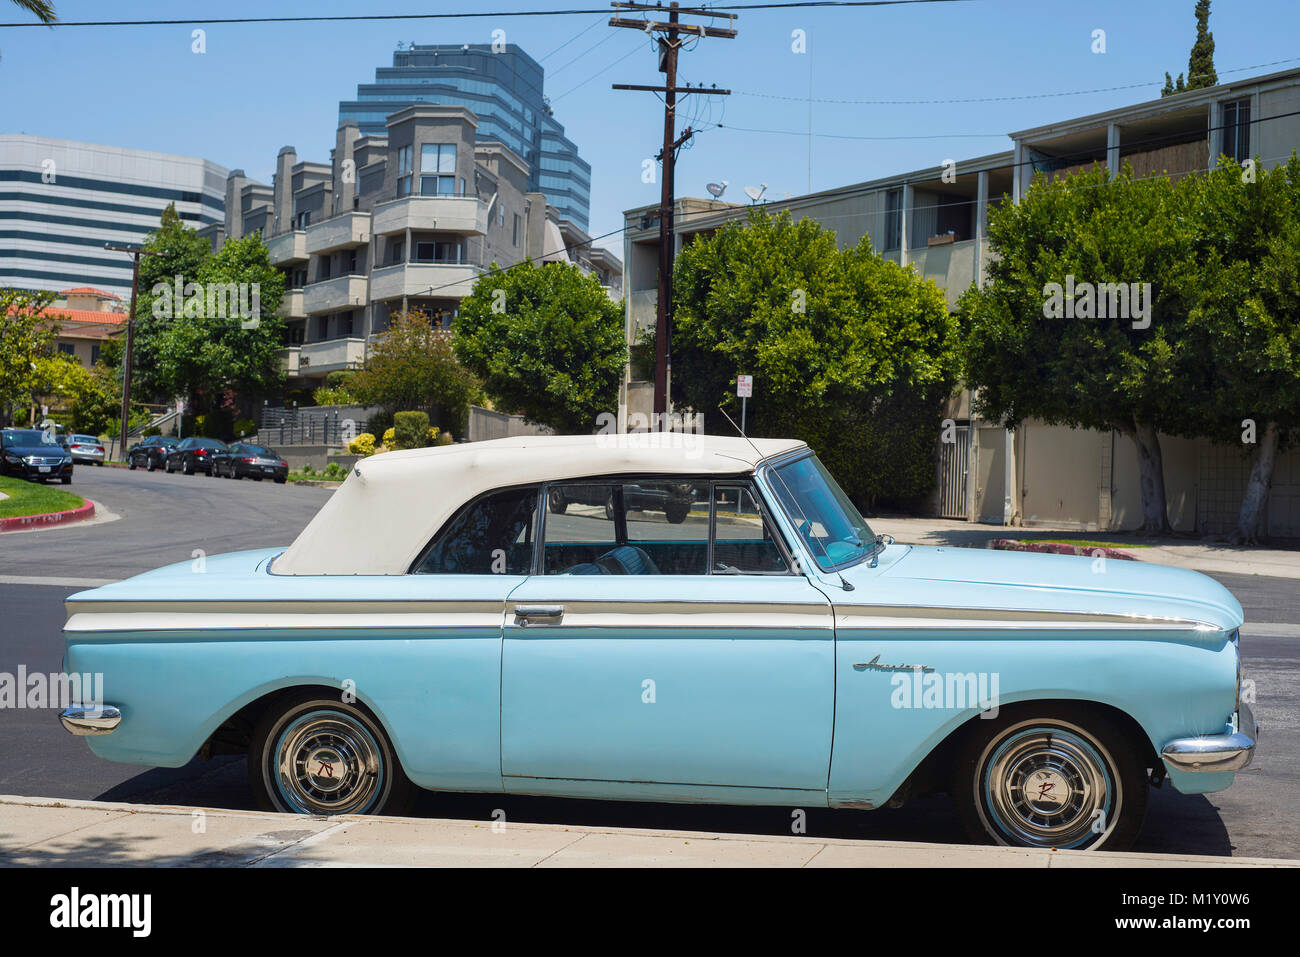 An American Rambler in Los Angeles. Stock Photo